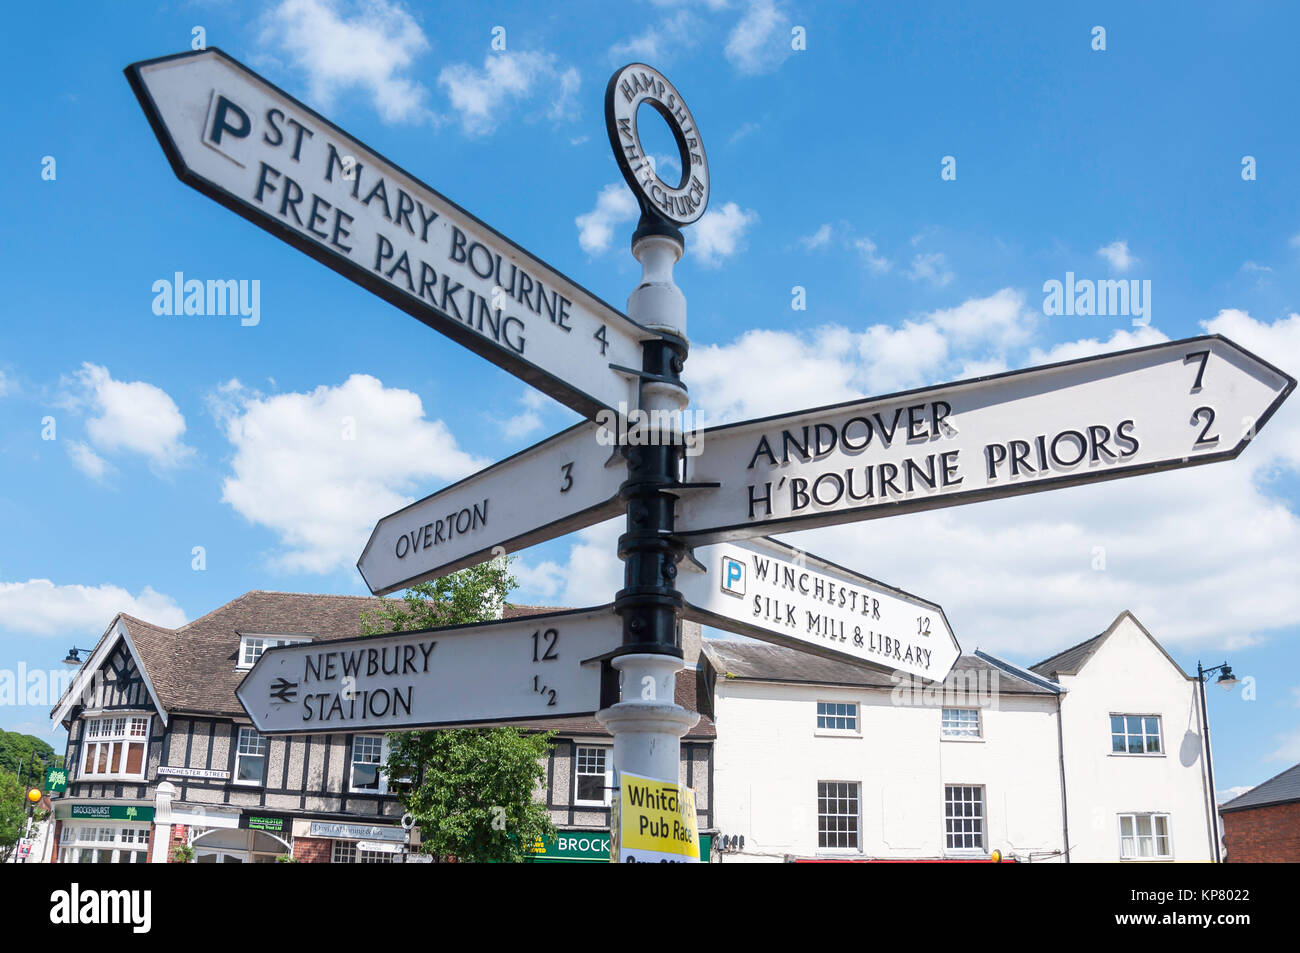 Fingerpost signpost, Winchester Street, Whitchurch, Hampshire, England, United Kingdom - Stock Image